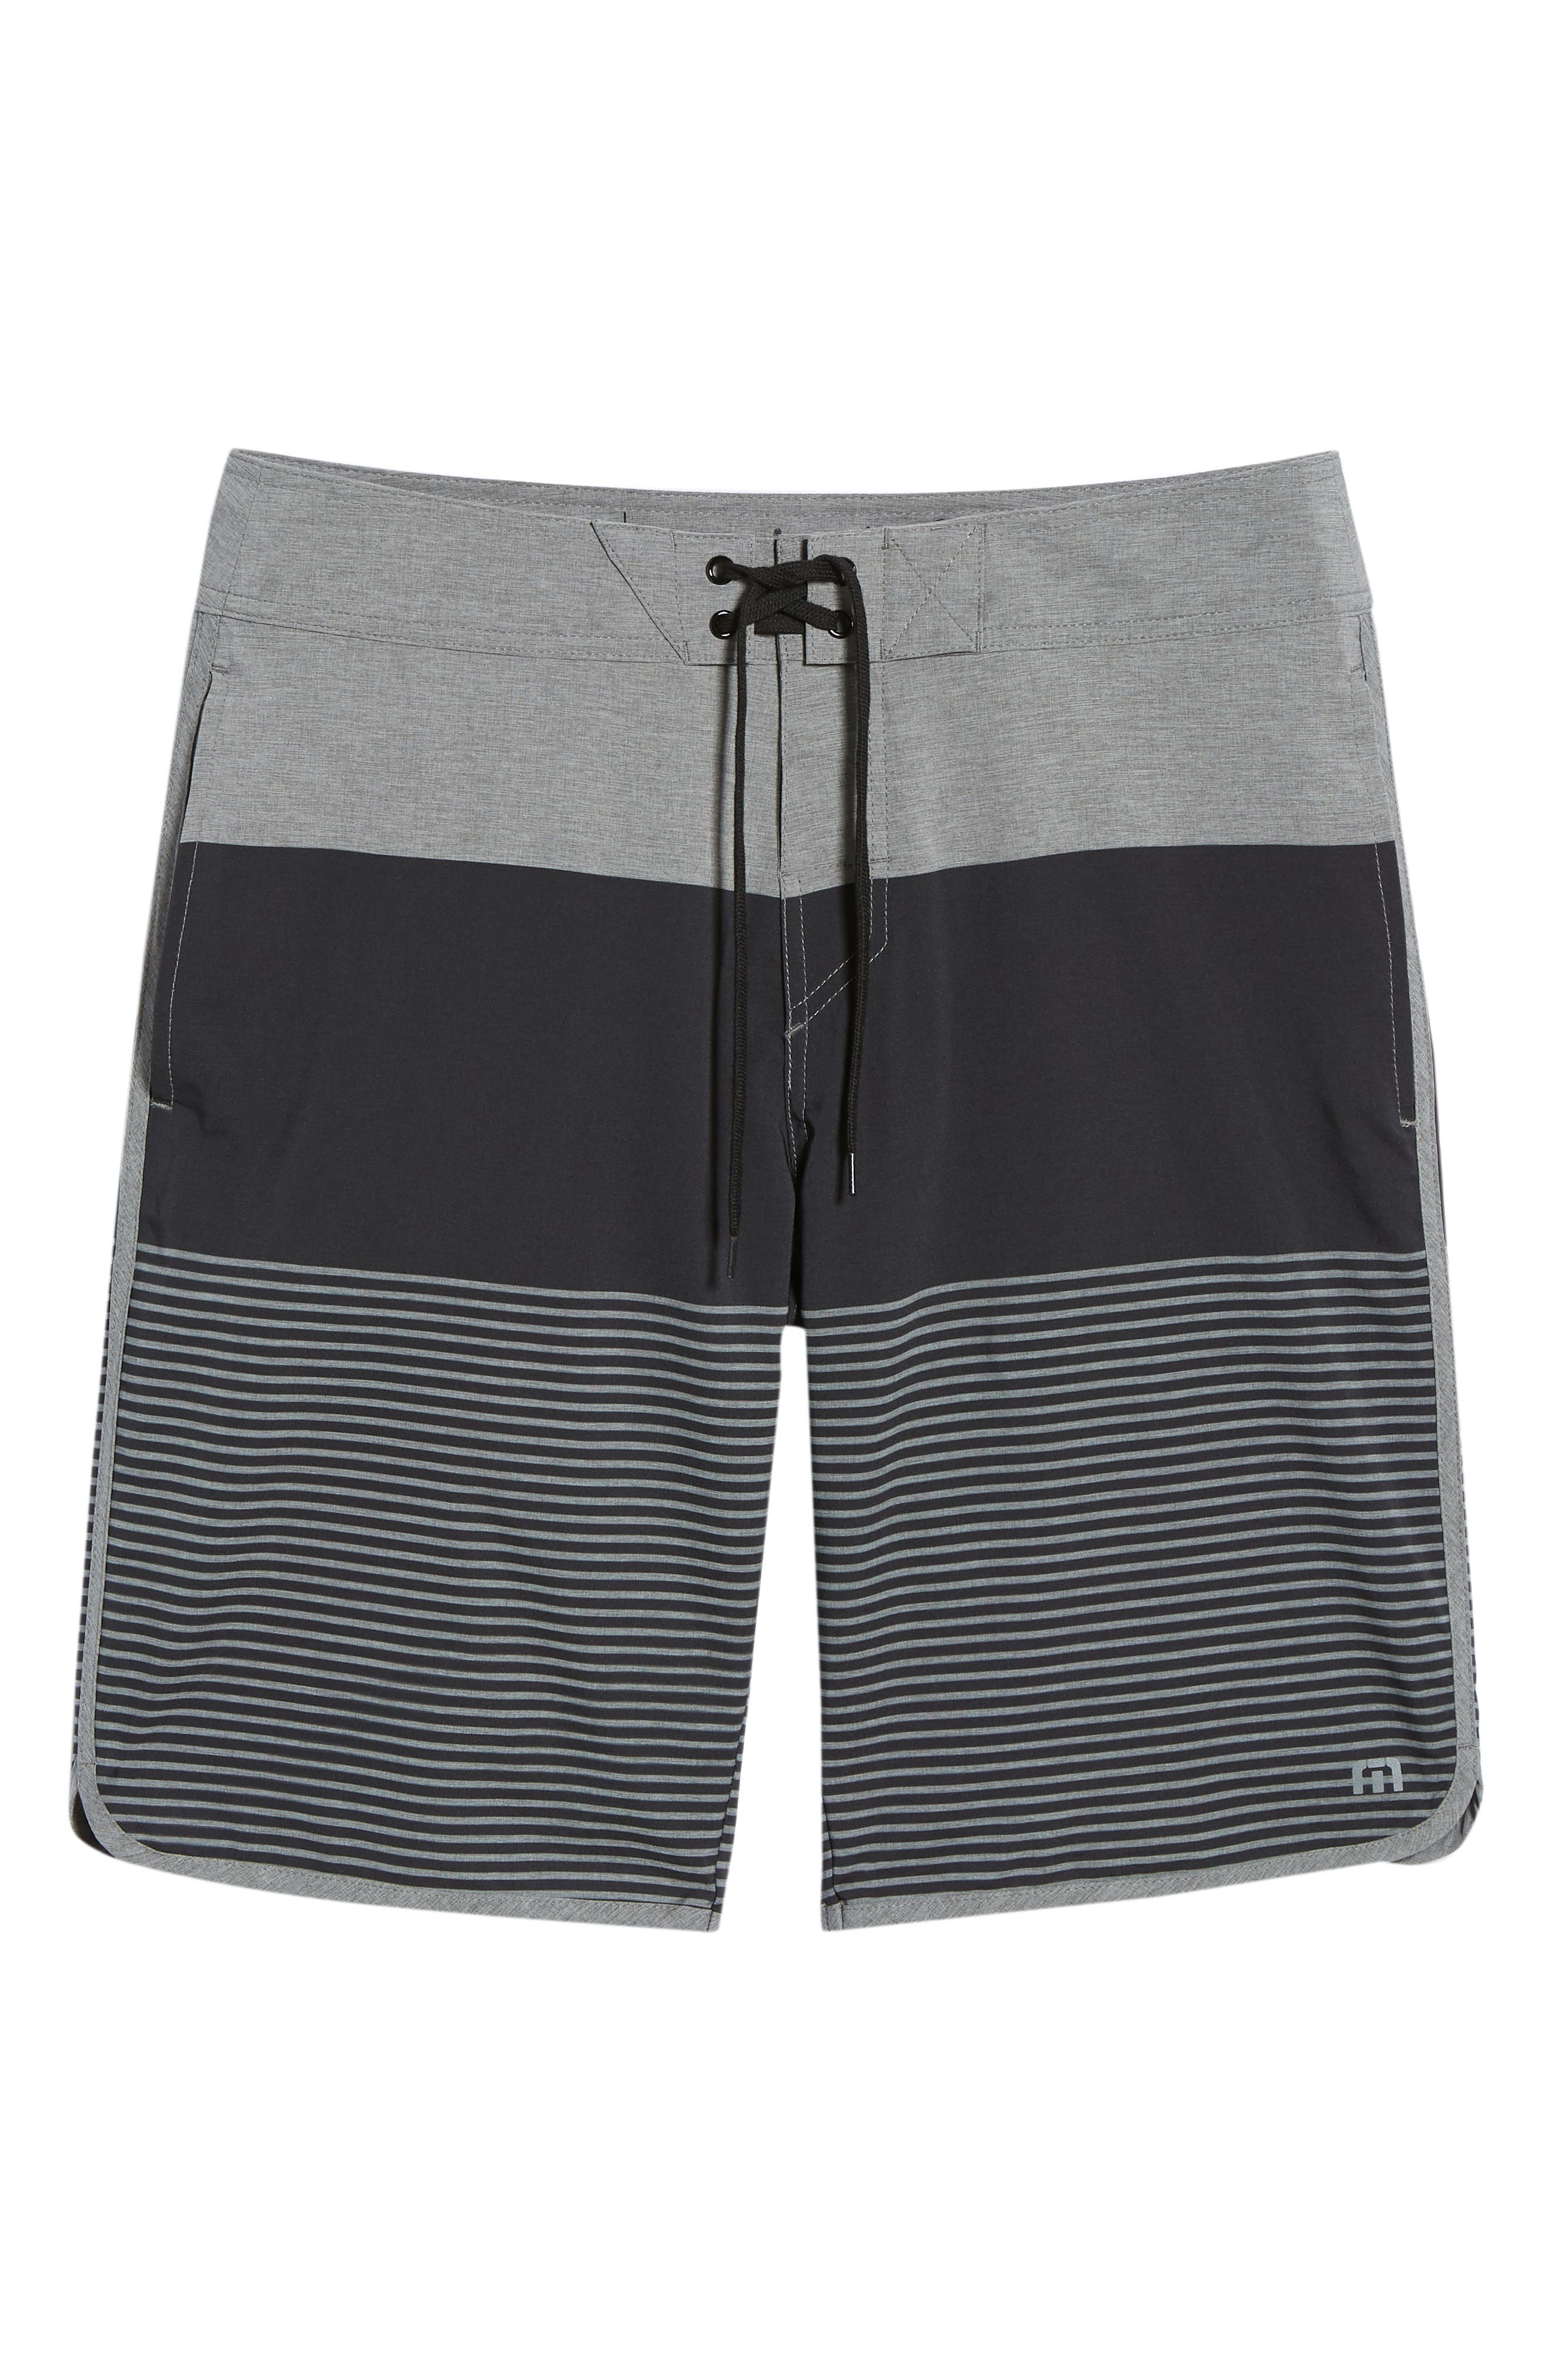 Claim It Regular Fit Board Shorts,                             Alternate thumbnail 6, color,                             Heather Black